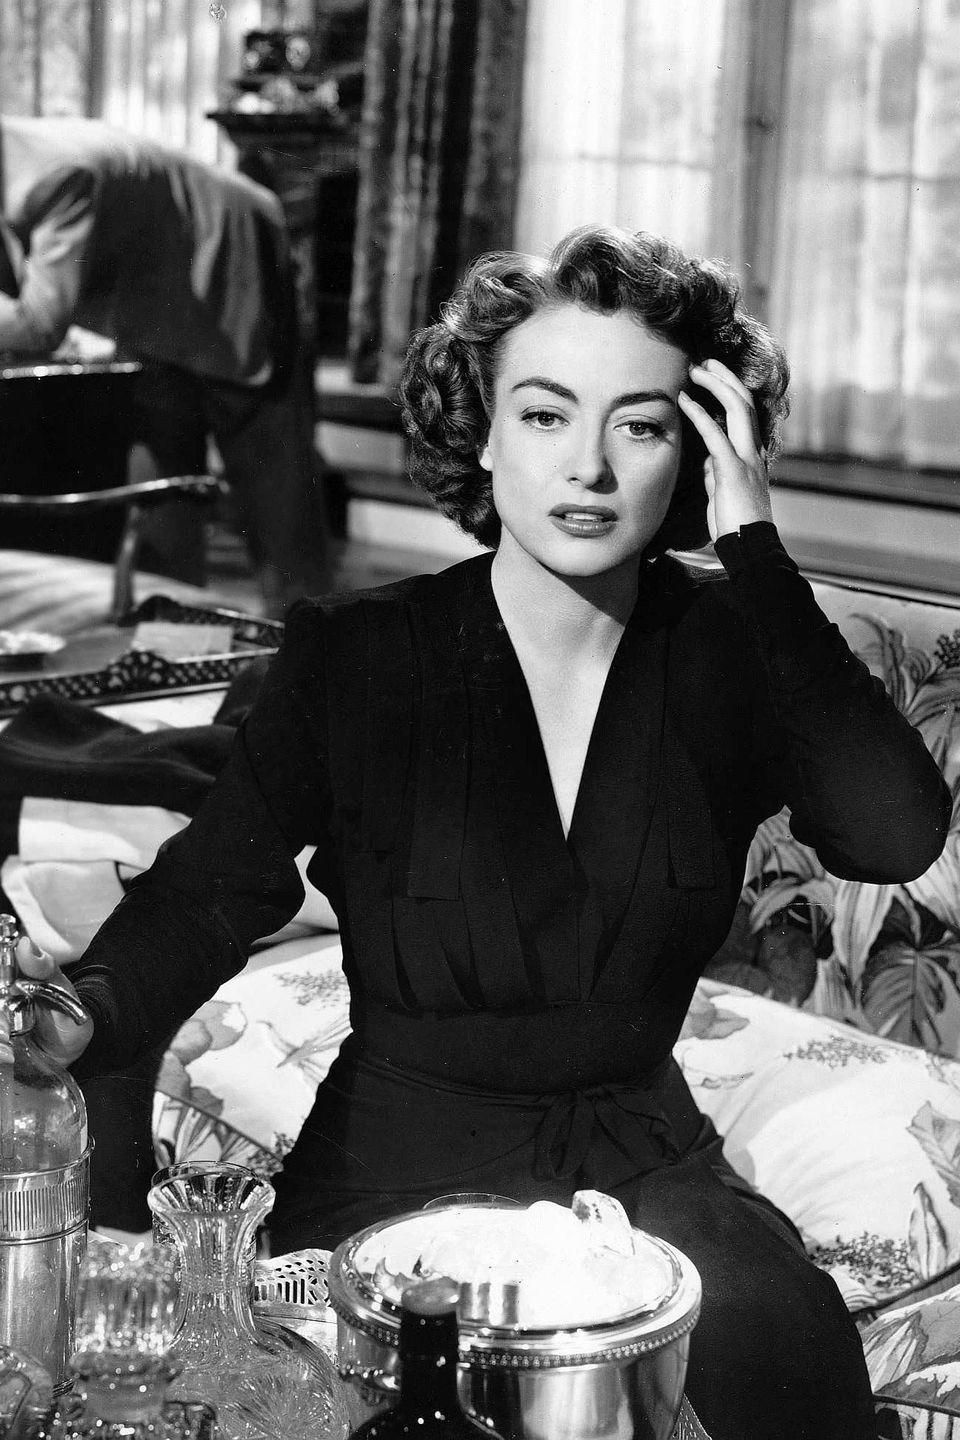 <p><strong>Synopsis: </strong>Joan Crawford stars as a mentally ill woman who is admitted into a psychiatric ward and reveals her complex story of how she wound up there; a dramatic tale of a women's obsession with her ex-lover.</p>